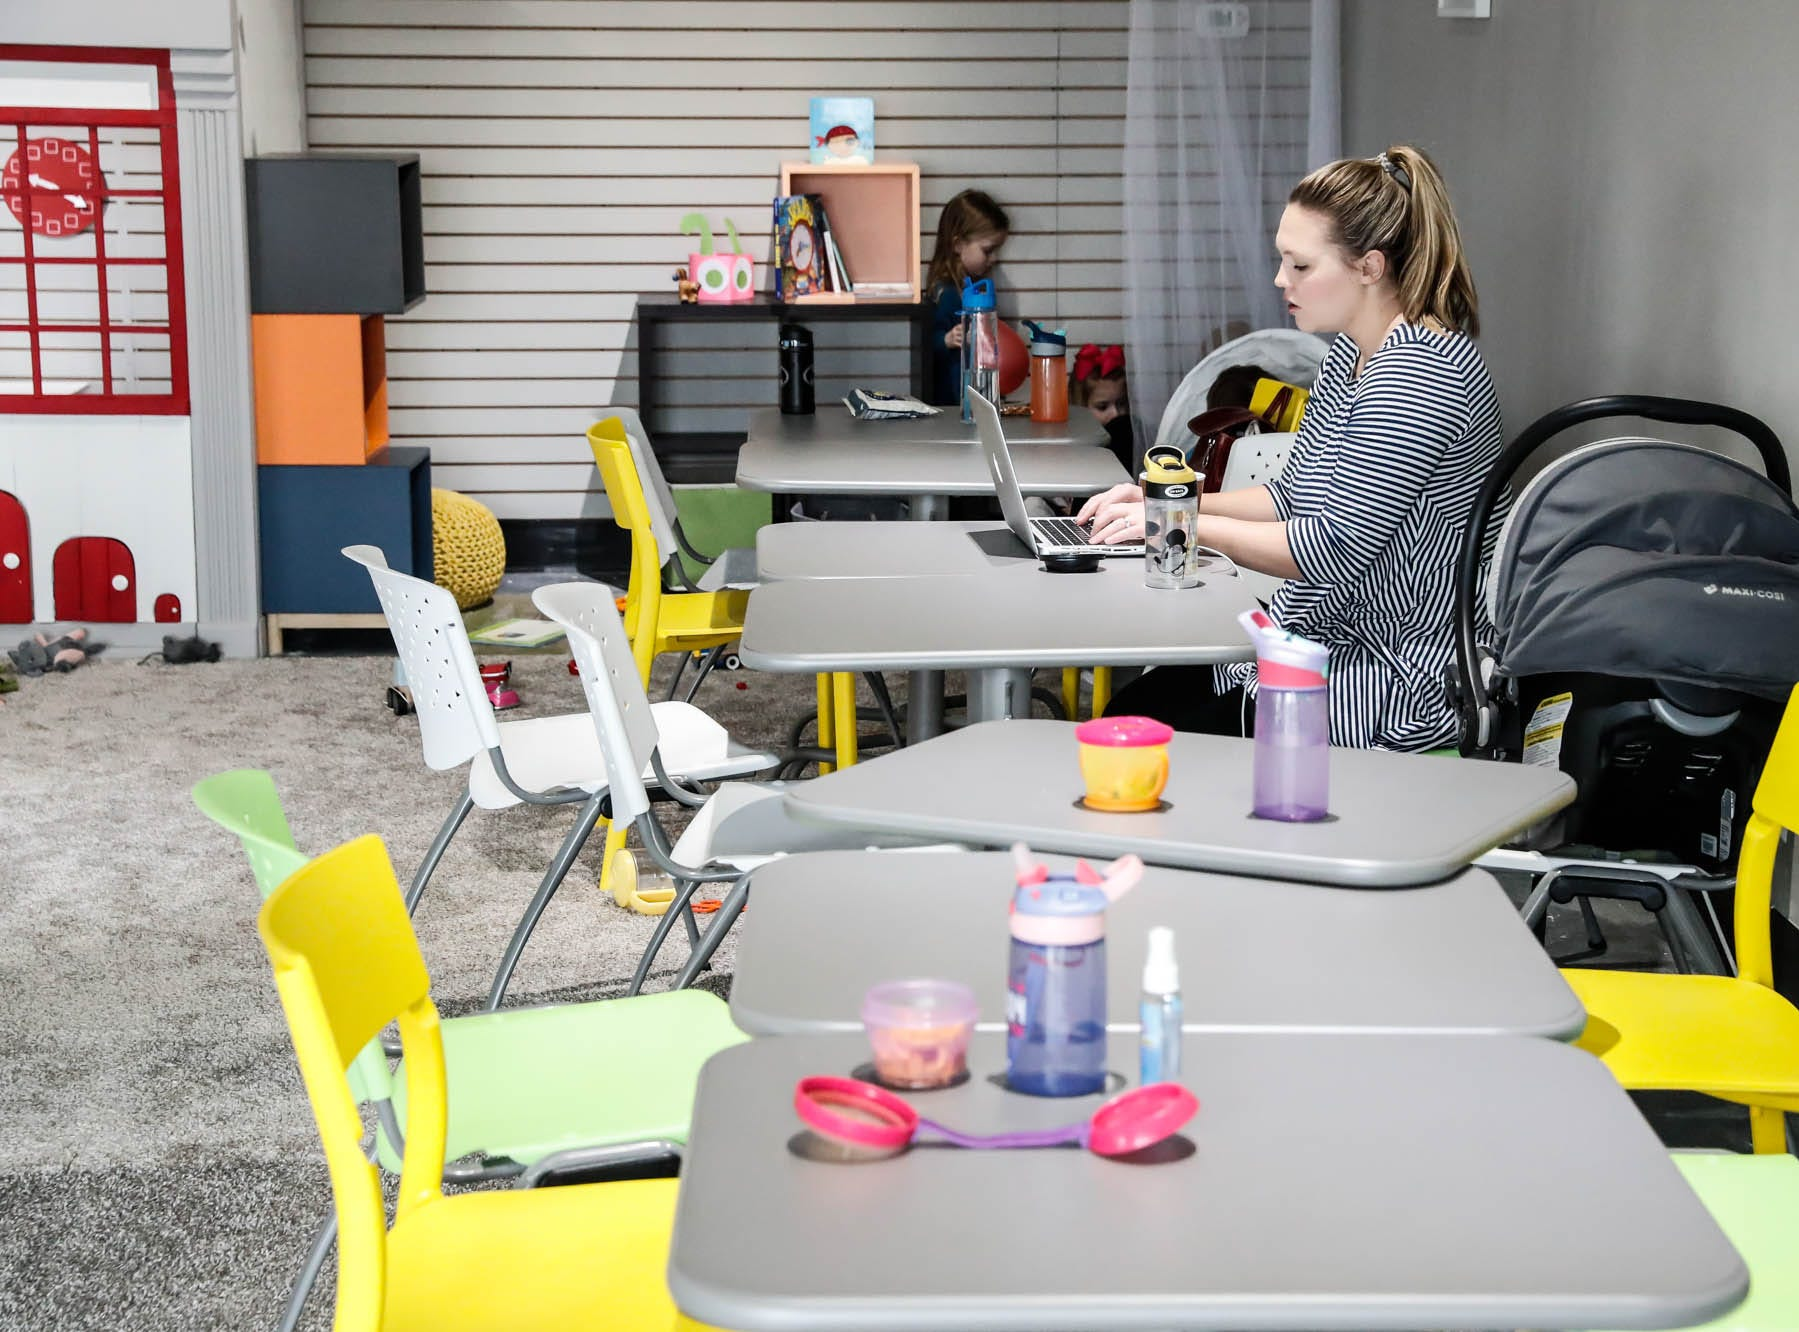 Mom Emelie Russell works on her computer while watching her child at The Little Village Playroom, 9850 N. Michigan Rd, Carmel, Ind., on Tuesday, Feb. 5, 2019.